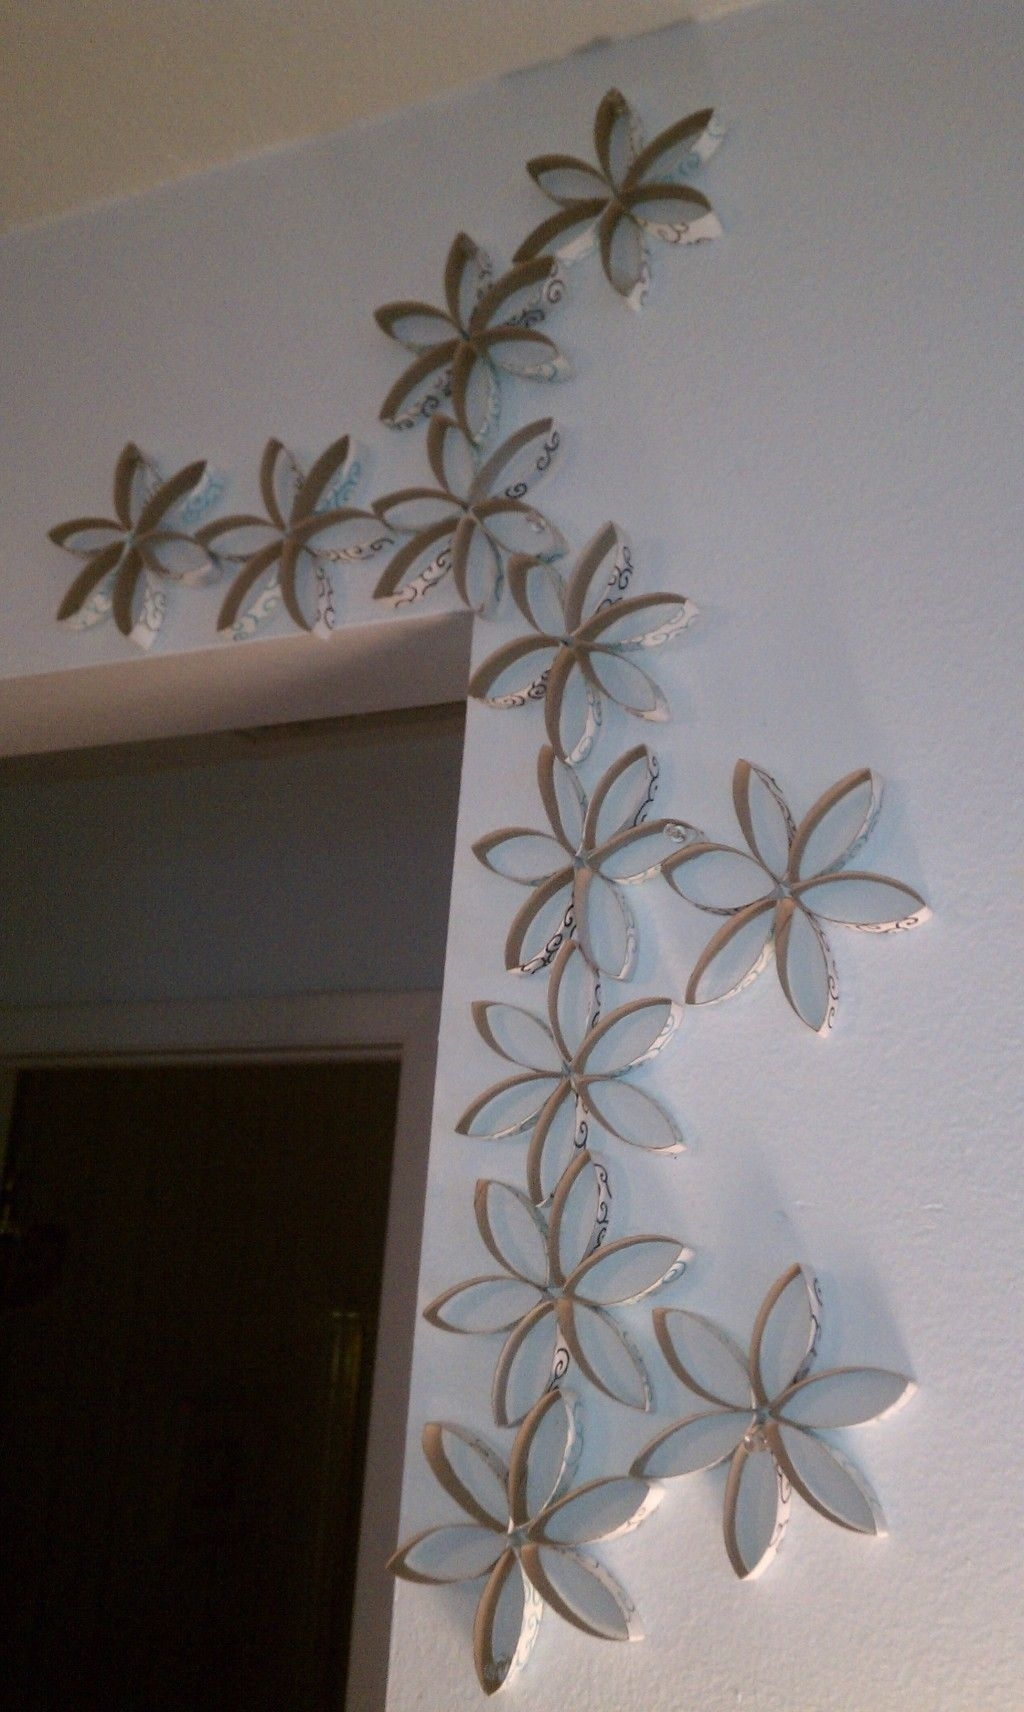 Toilet Paper Roll Wall Art | My Next Projects | Pinterest | Toilet Within Newest Toilet Paper Roll Wall Art (View 15 of 20)